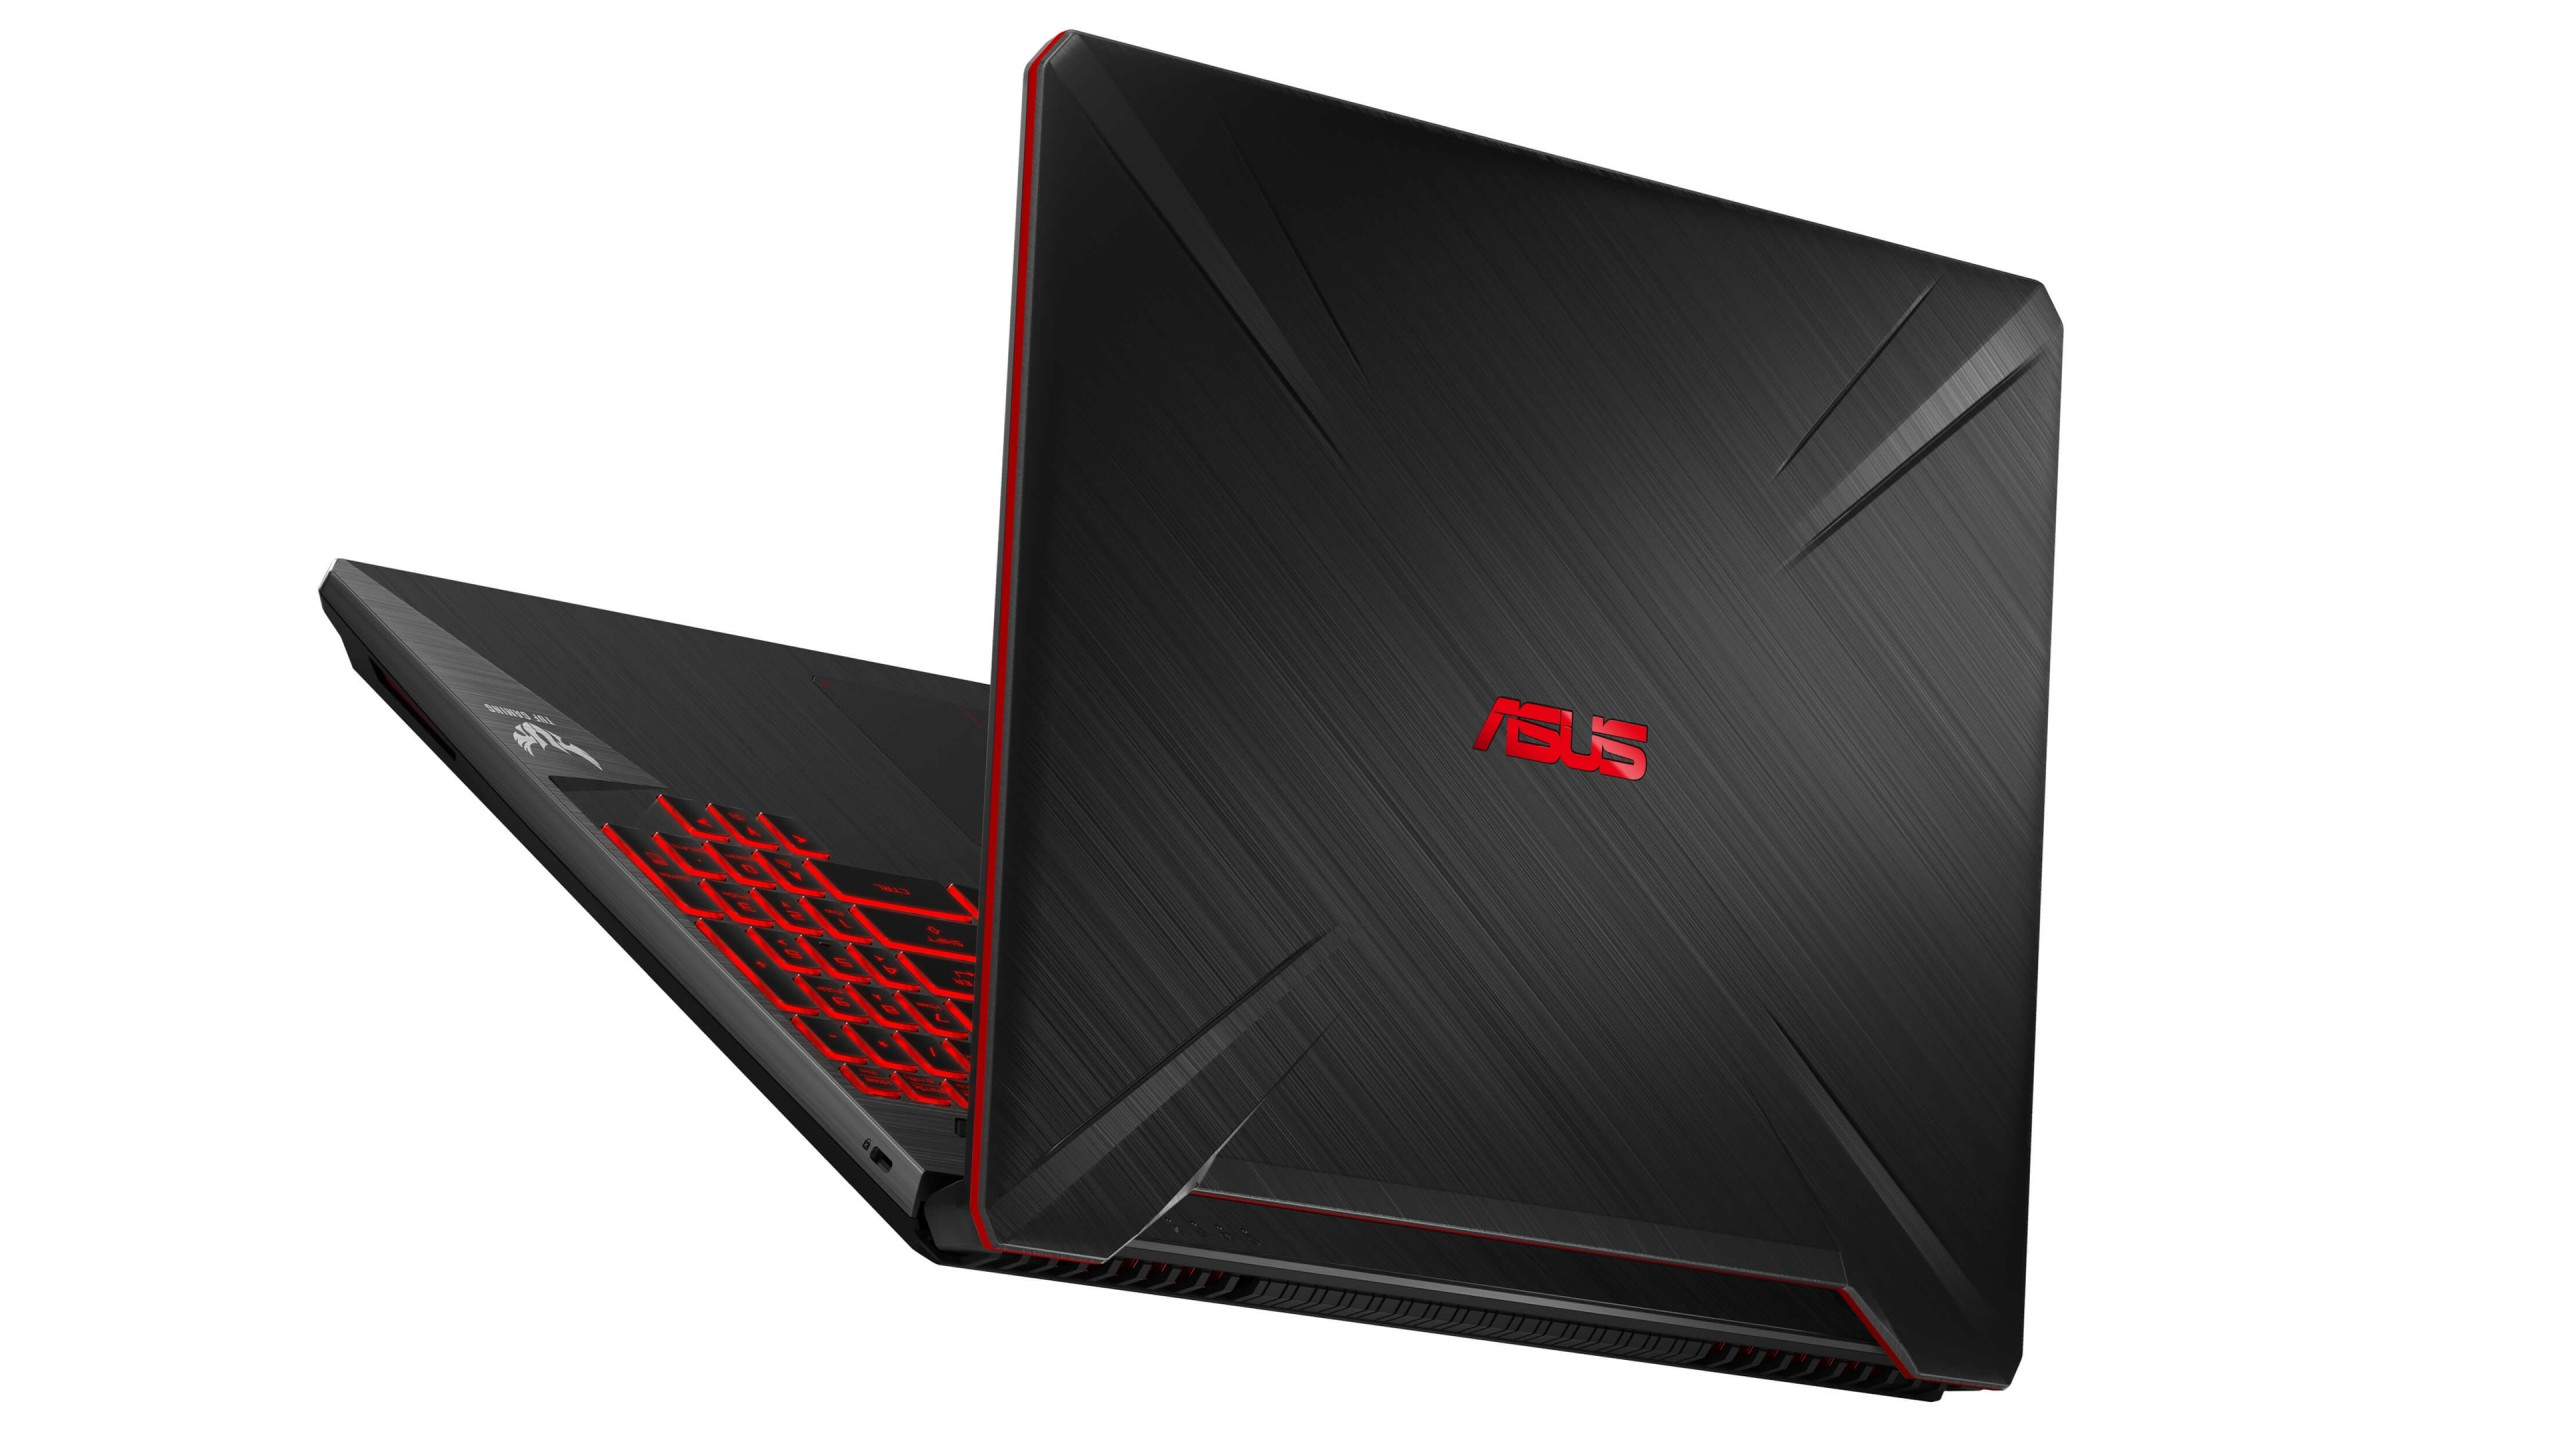 Asus Rog Hd Wallpaper Wallpaper Asus Tuf Gaming Fx505dy Amp Fx705dy Ces 2019 4k